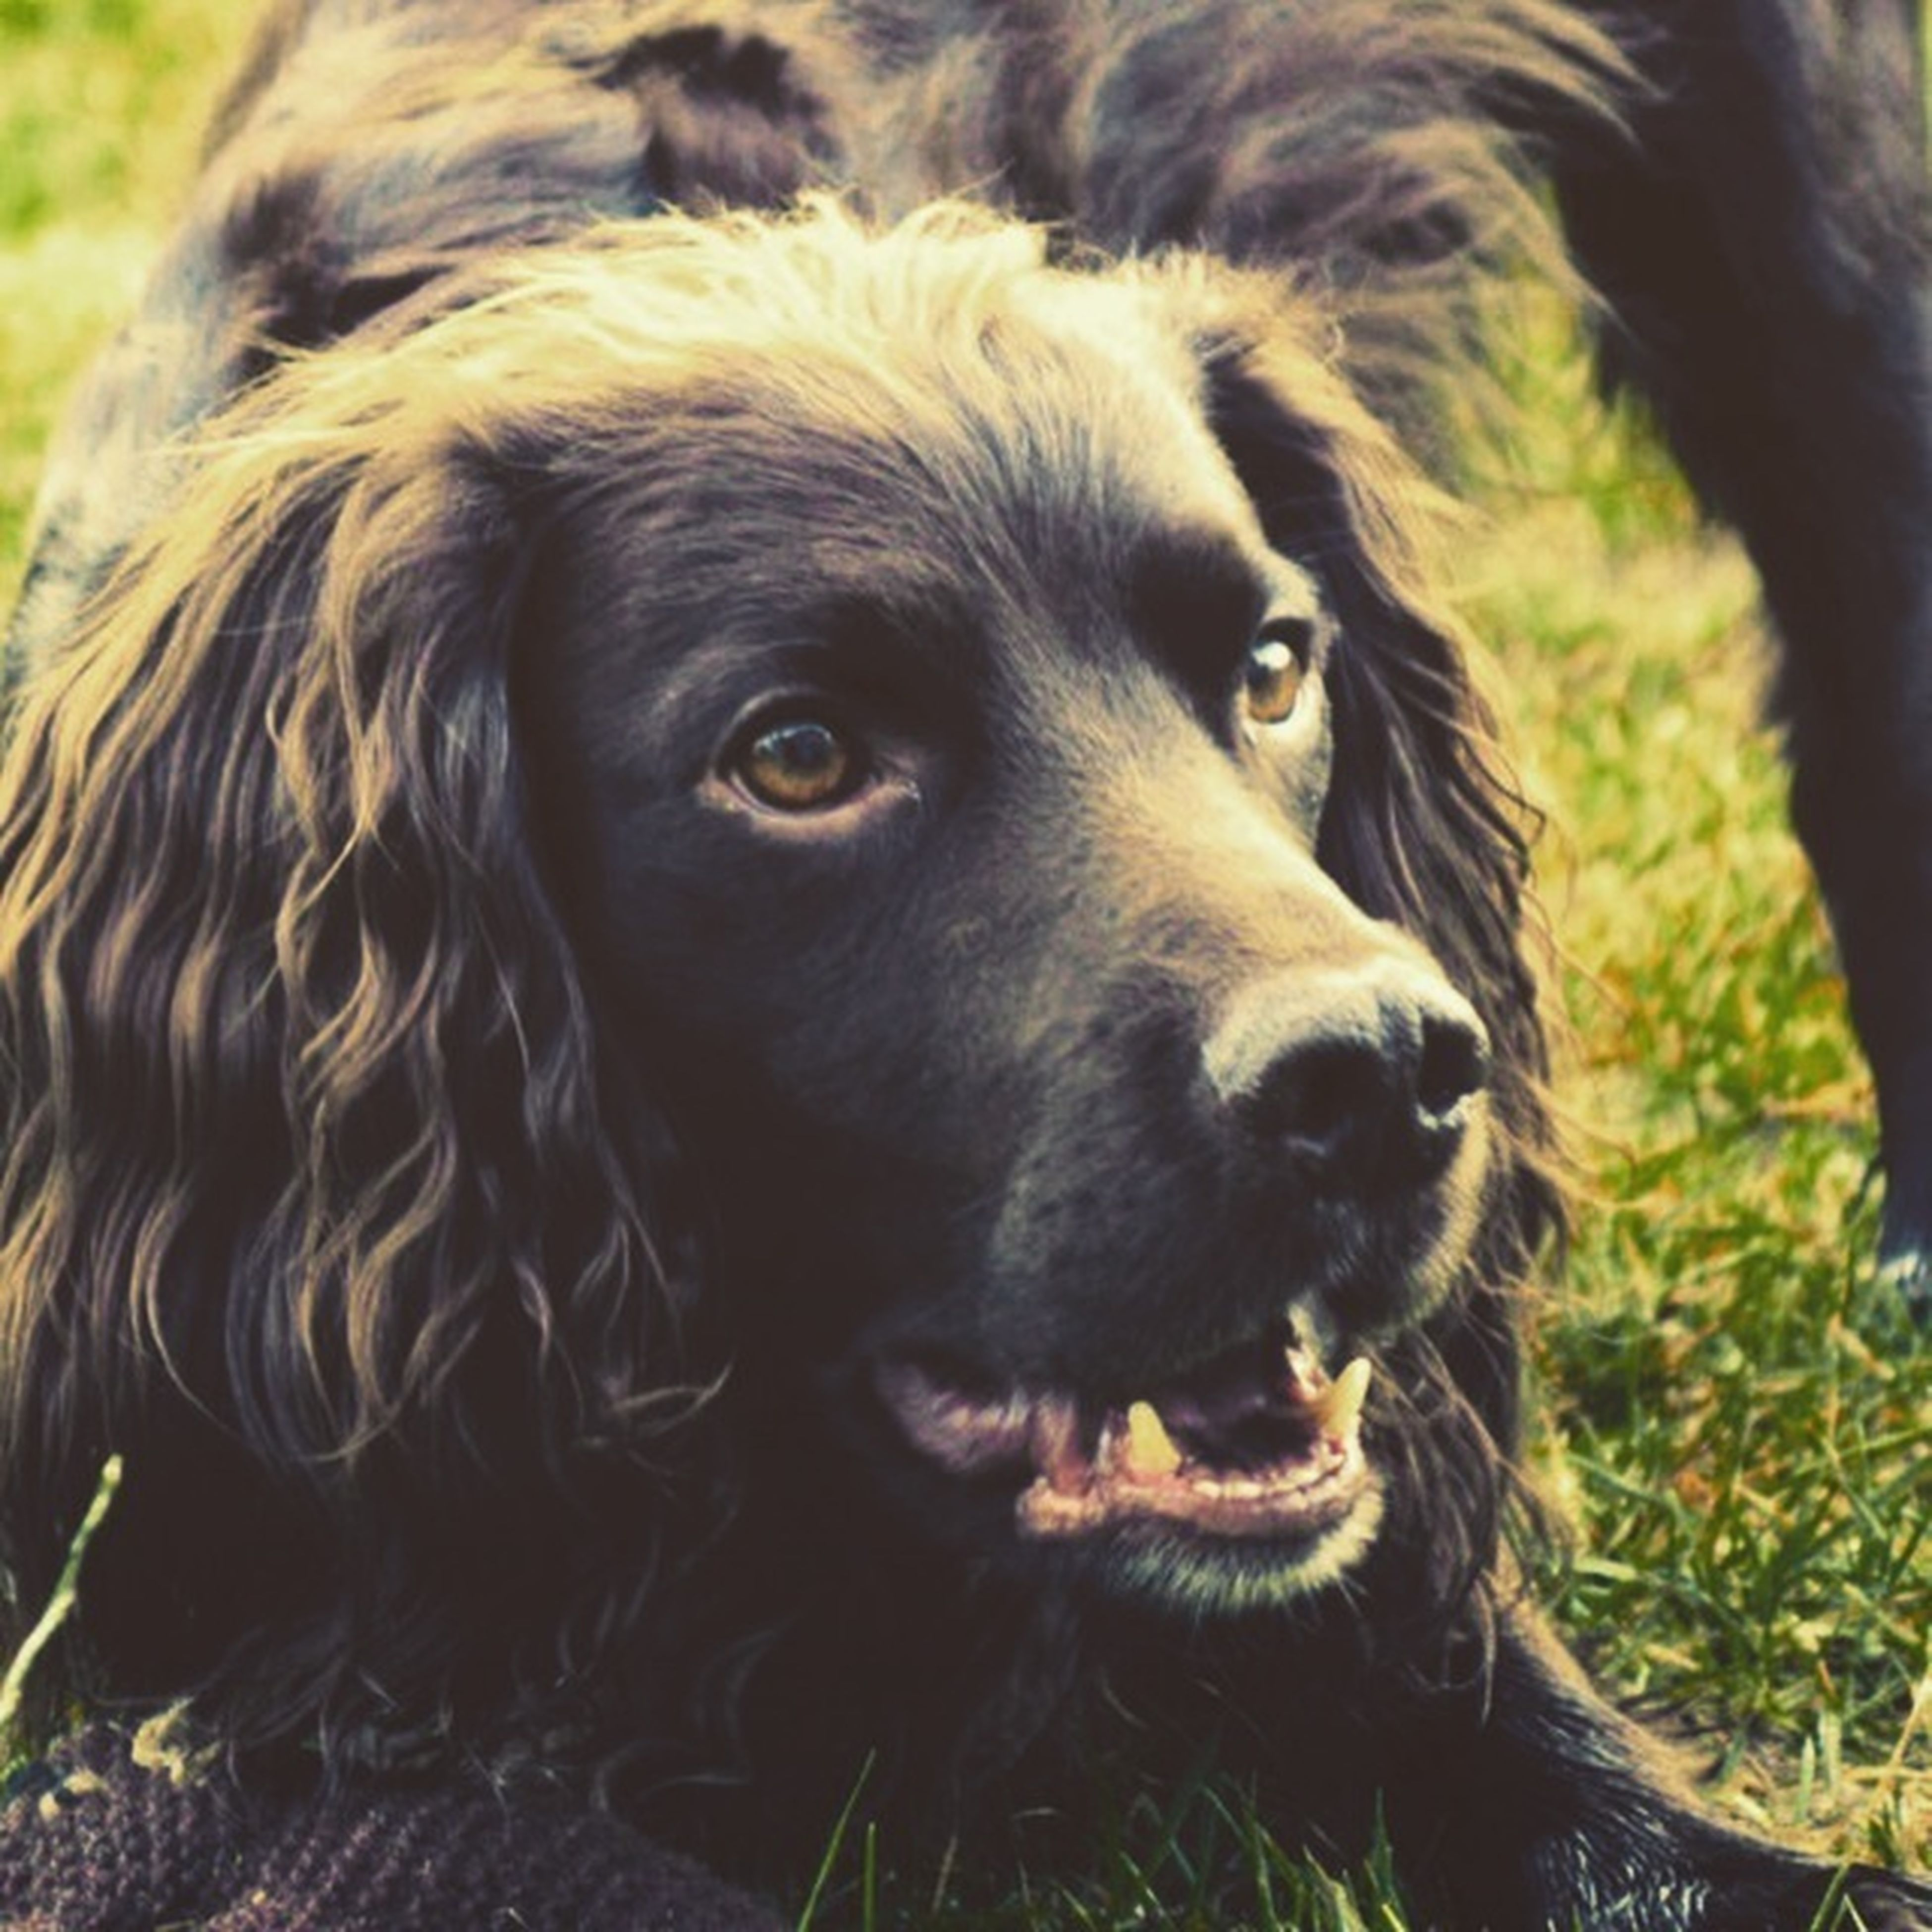 animal themes, one animal, mammal, animal head, domestic animals, close-up, animal body part, portrait, focus on foreground, dog, looking at camera, animal hair, field, no people, day, outdoors, zoology, nature, animals in the wild